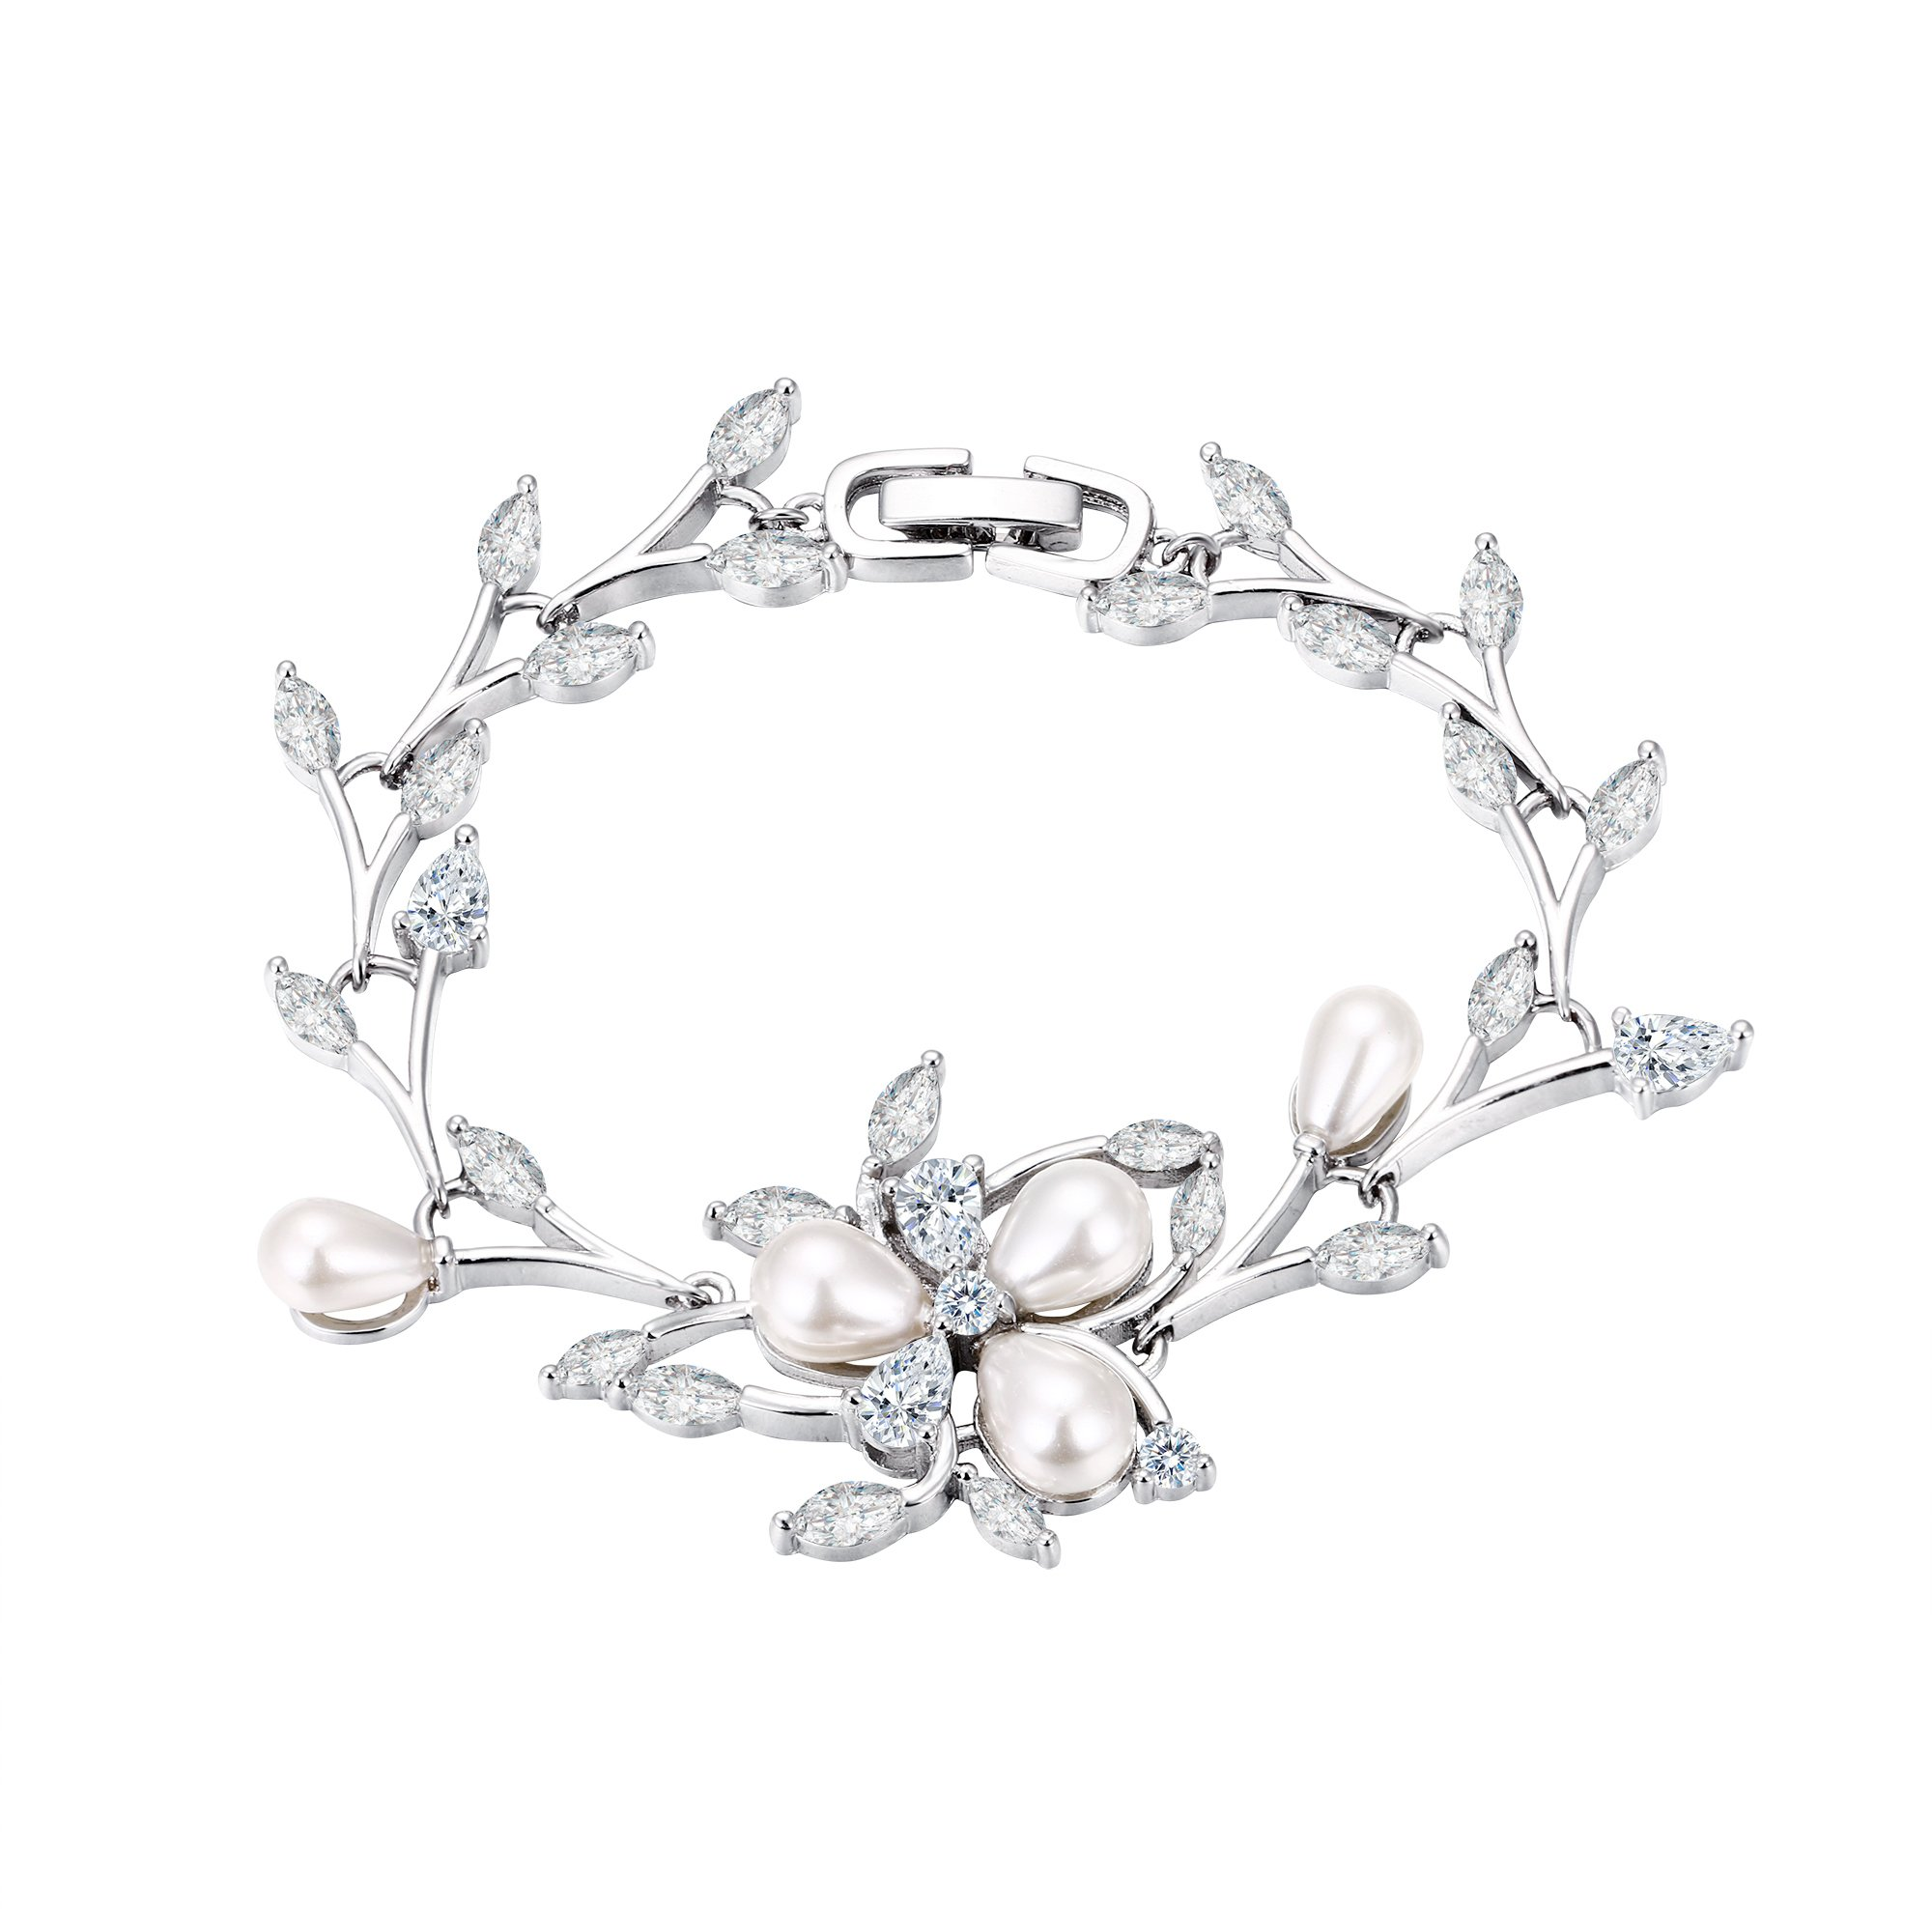 EVER FAITH Women's CZ Simulated Pearl Bridal Flower Leaf Filigree Tennis Bracelet Clear Silver-Tone